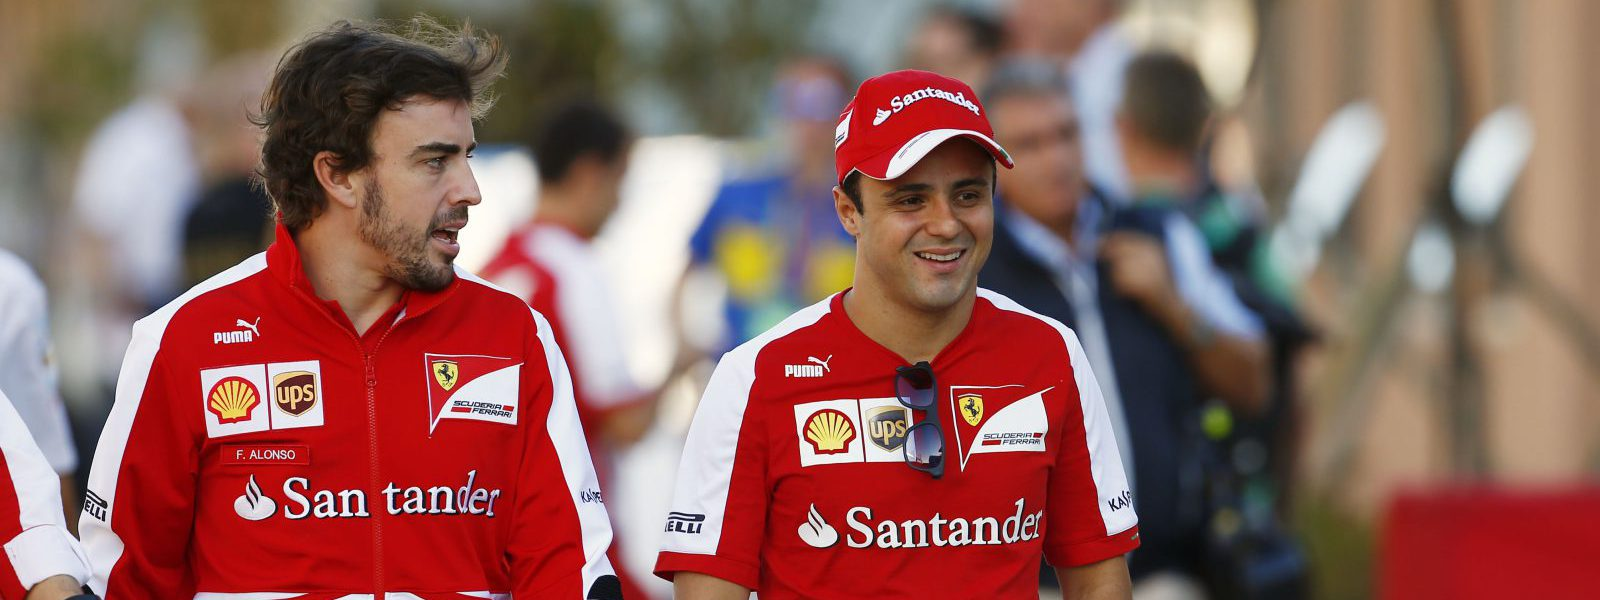 Motorsports: FIA Formula One World Championship 2013, Grand Prix of Korea,  #3 Fernando Alonso (ESP, Scuderia Ferrari), #4 Felipe Massa (BRA, Scuderia Ferrari),  *** Local Caption *** +++ www.hoch-zwei.net +++ copyright: HOCH ZWEI +++